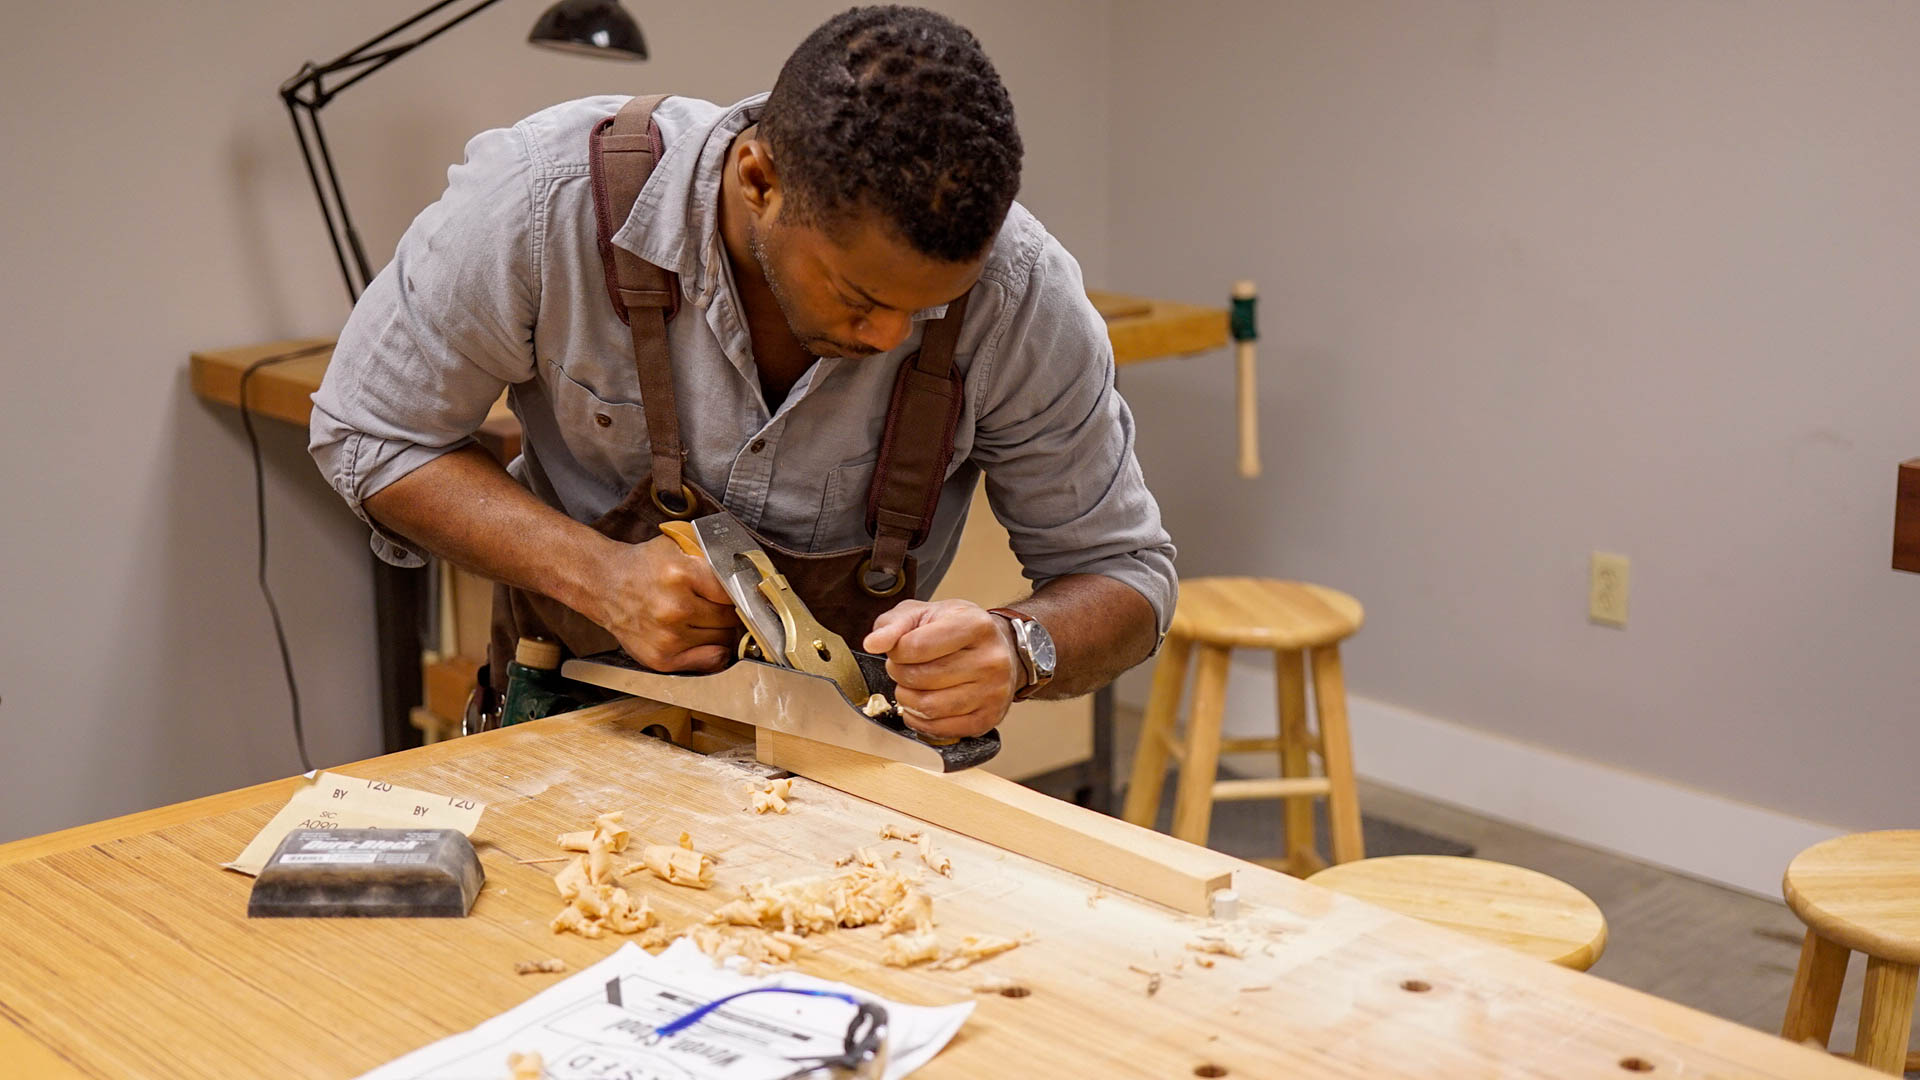 Austin School Of Furniture Design Is A Woodworking And Furniture School Focused On Passing Down The Traditional Craft Of Woodworking Innovations Of The World